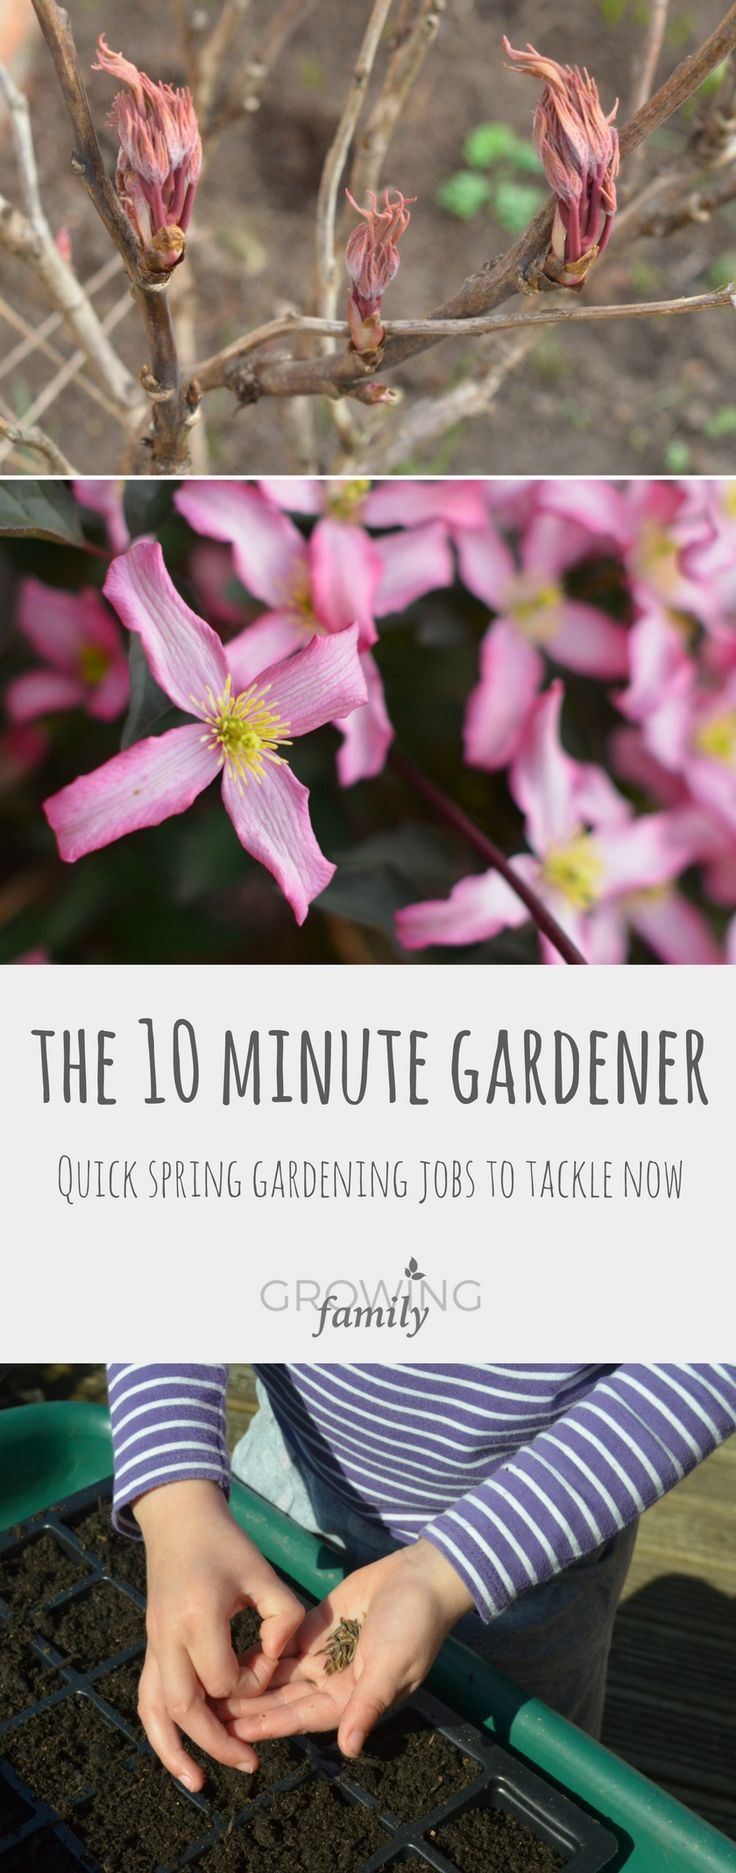 Only got 10 minutes to spare for gardening? Check out these quick spring gardening jobs to help you get your garden off to a great start!